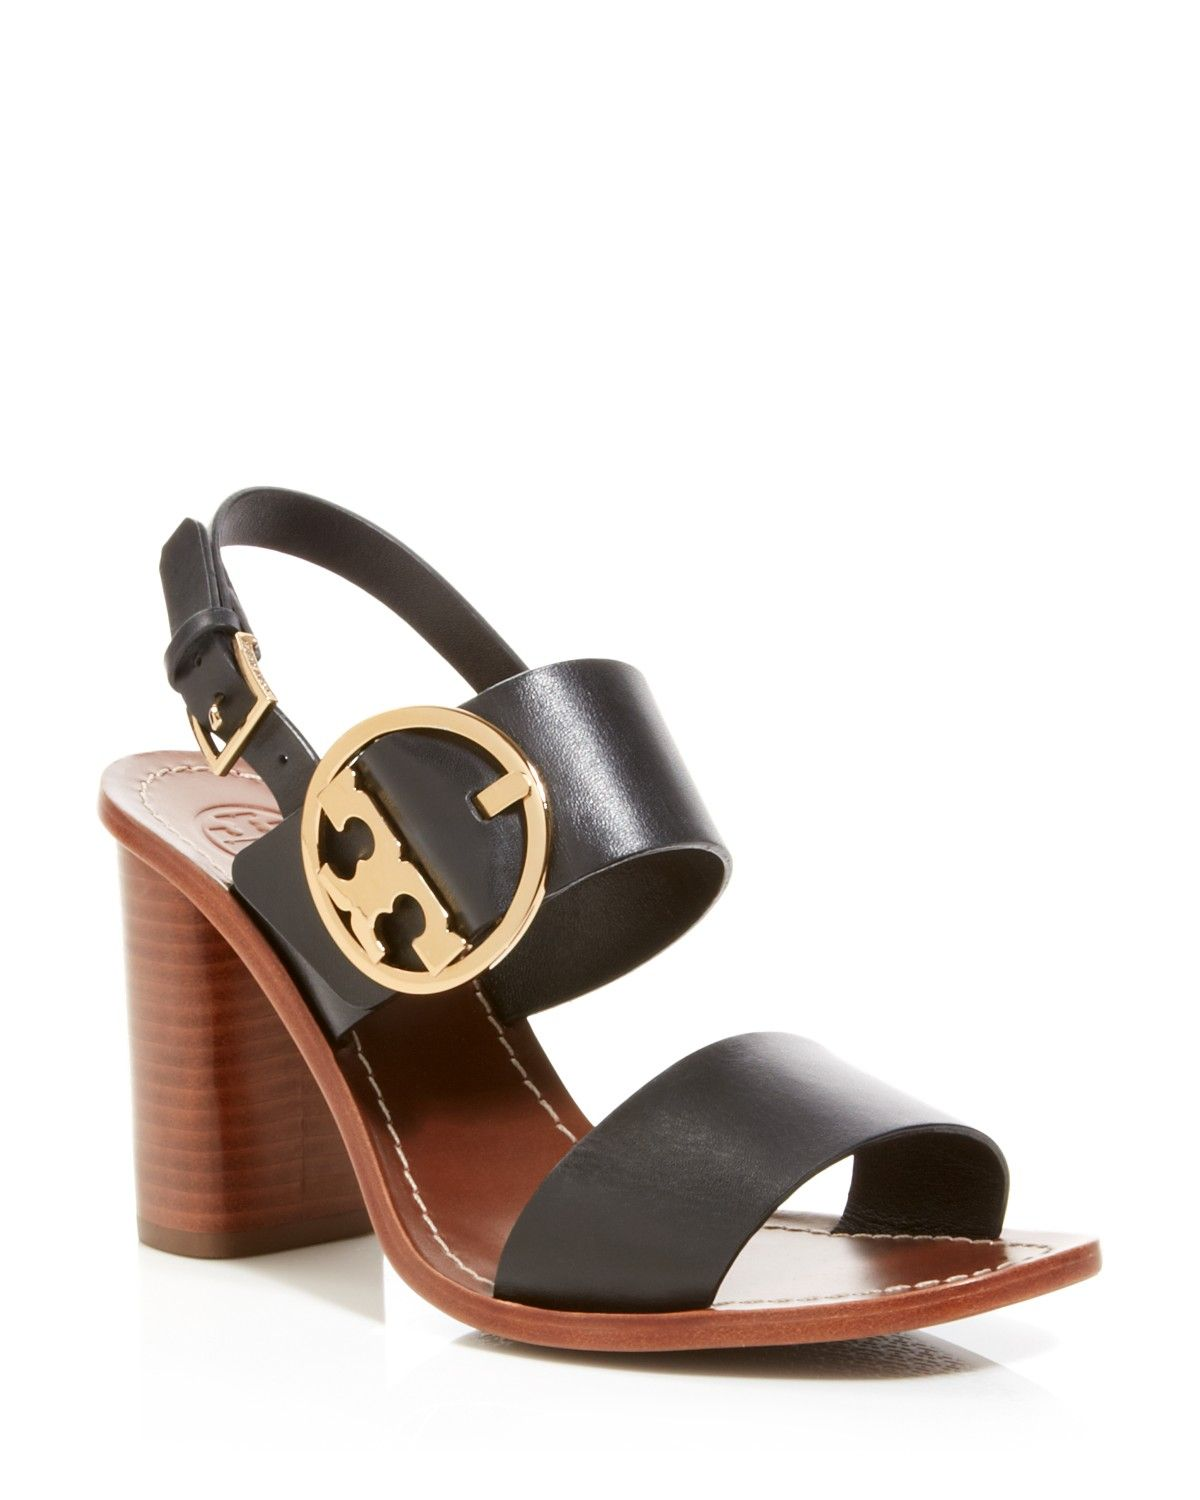 f1219ef138a2d Tory Burch Ankle Strap Sandals - Thames Buckle City